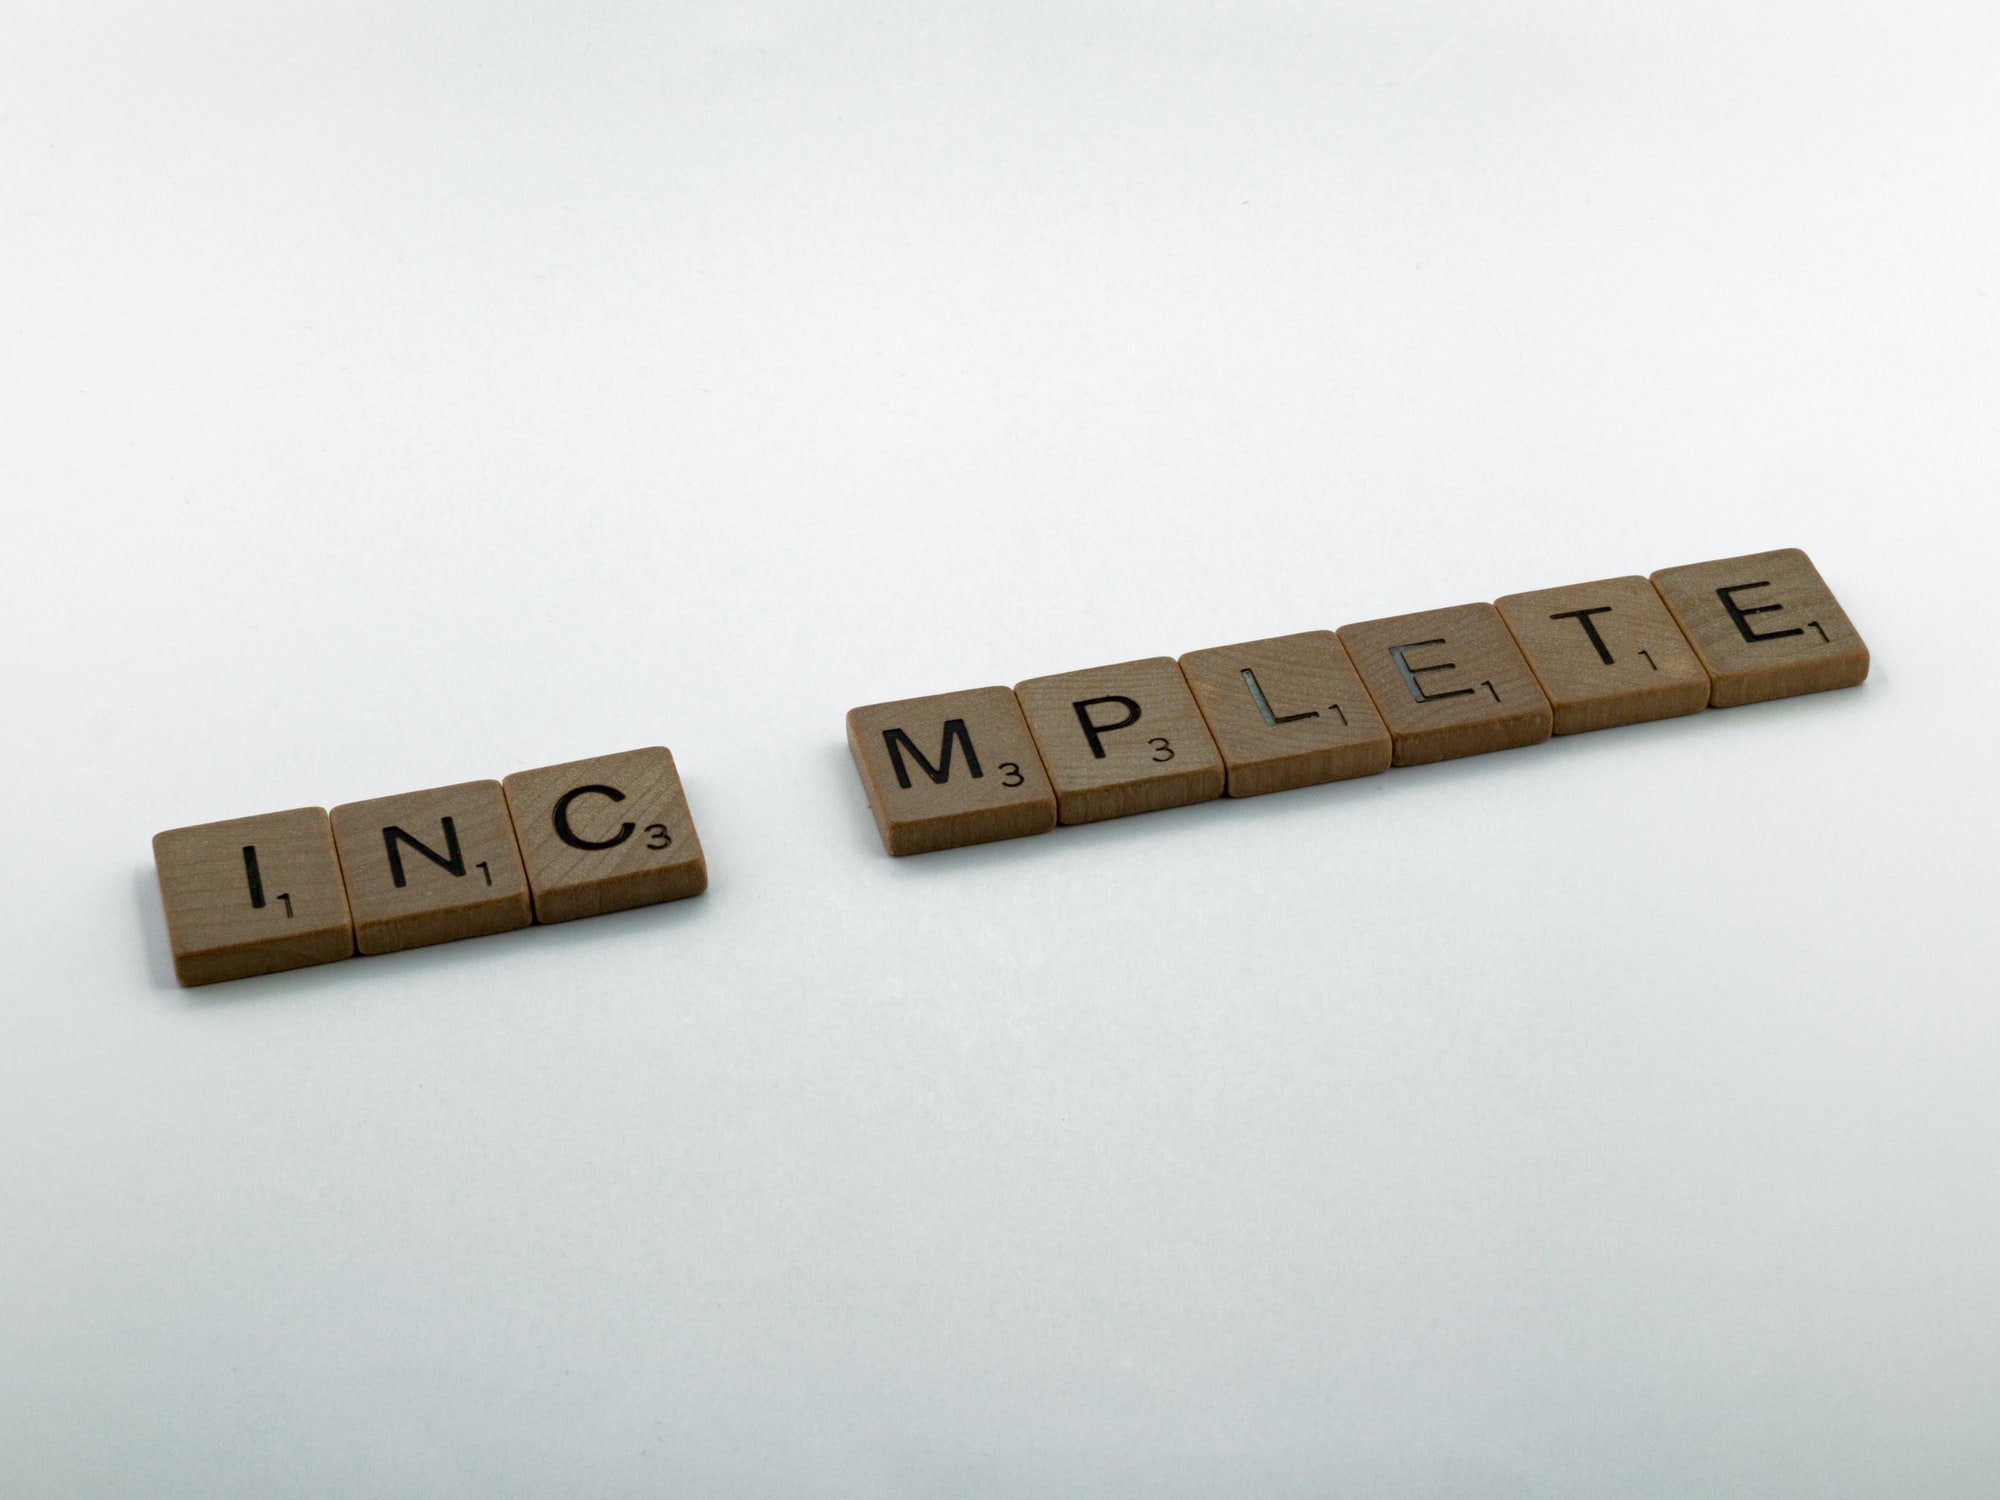 scrabble, scrabble pieces, lettering, letters, wood, scrabble tiles, white background, words, type, typography, design, layout, incomplete, incomplet, imperfect, not finished, finish, lacking, omit,